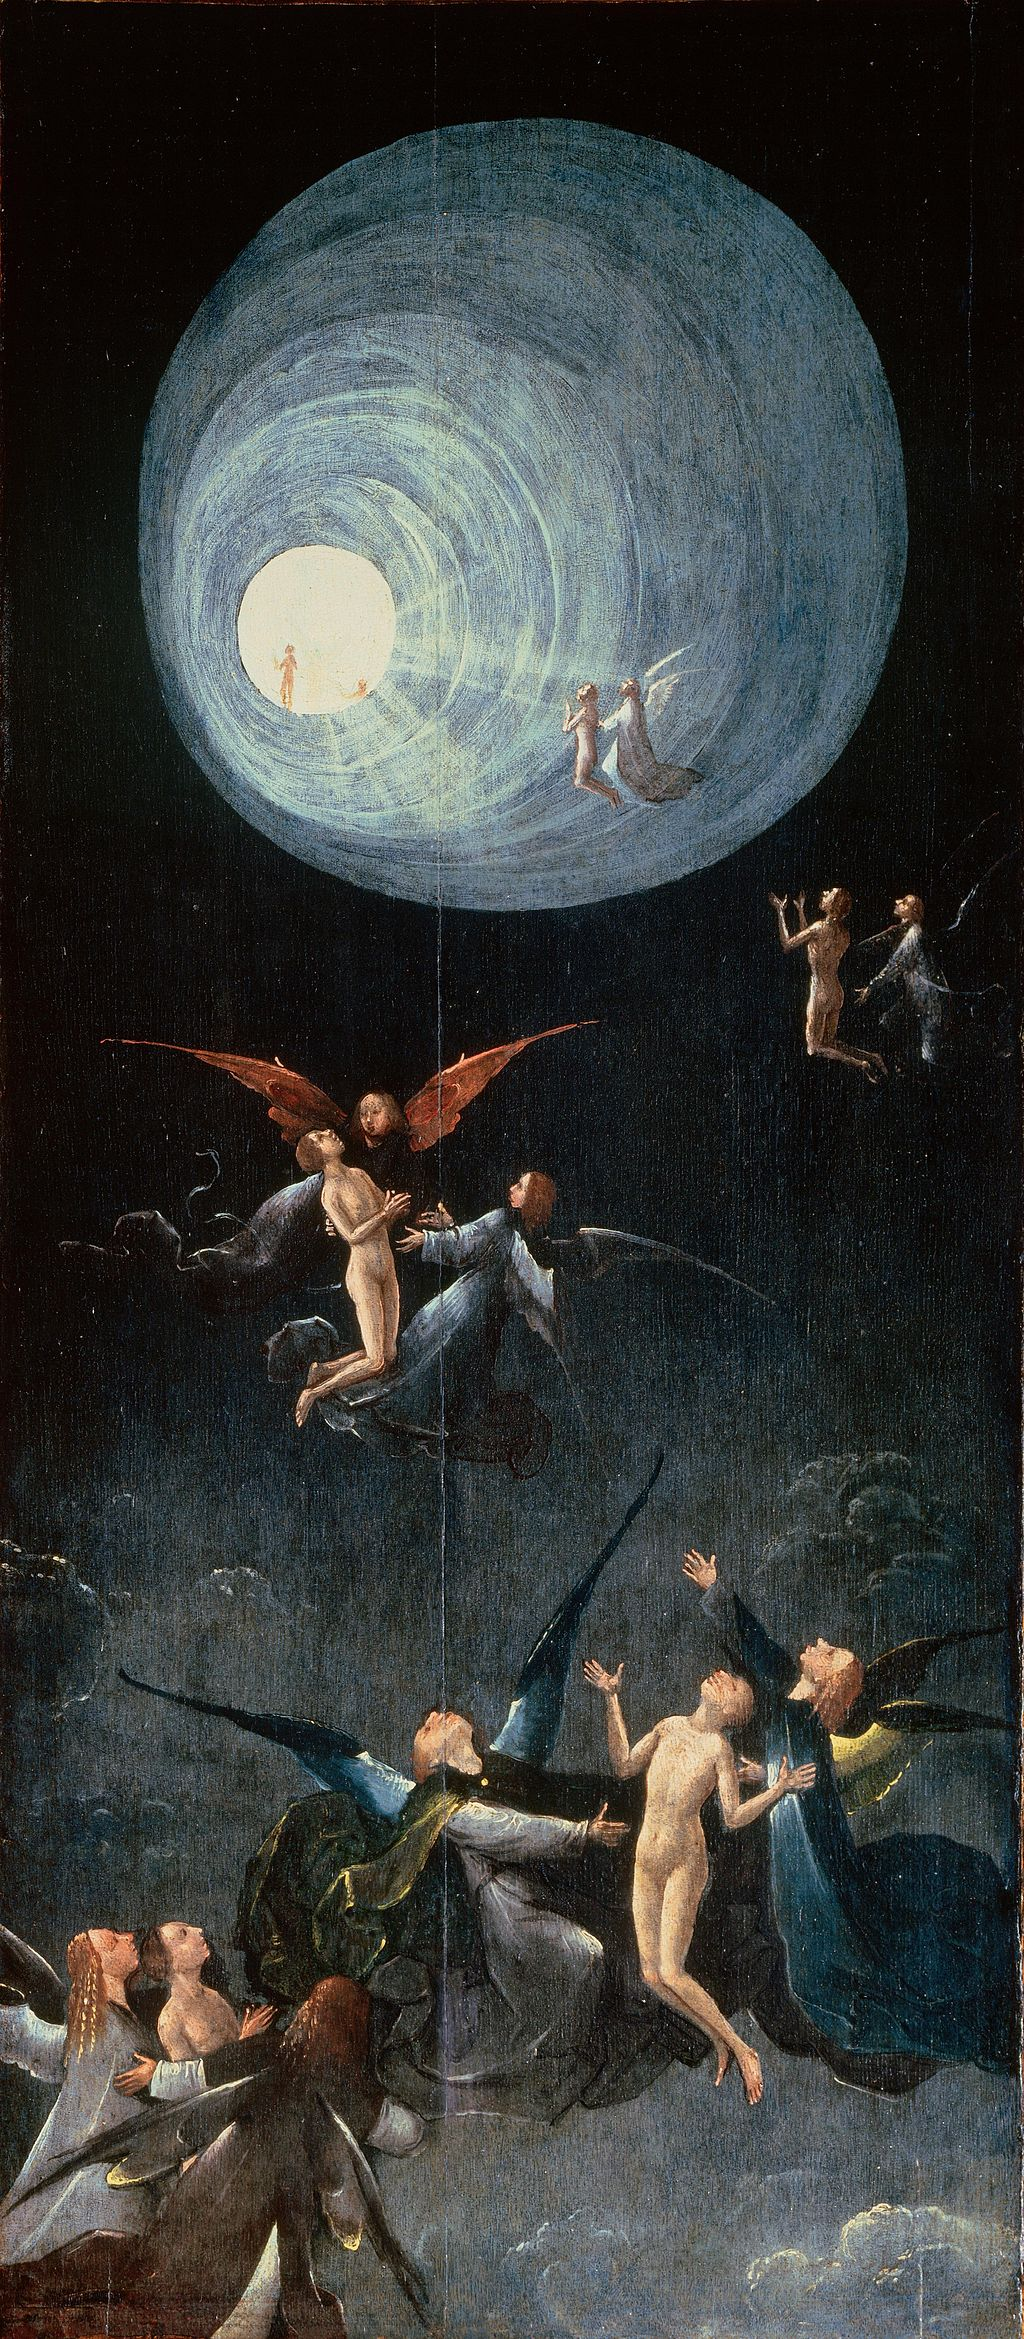 Ascent of the Blessed Hieronymus Bosch